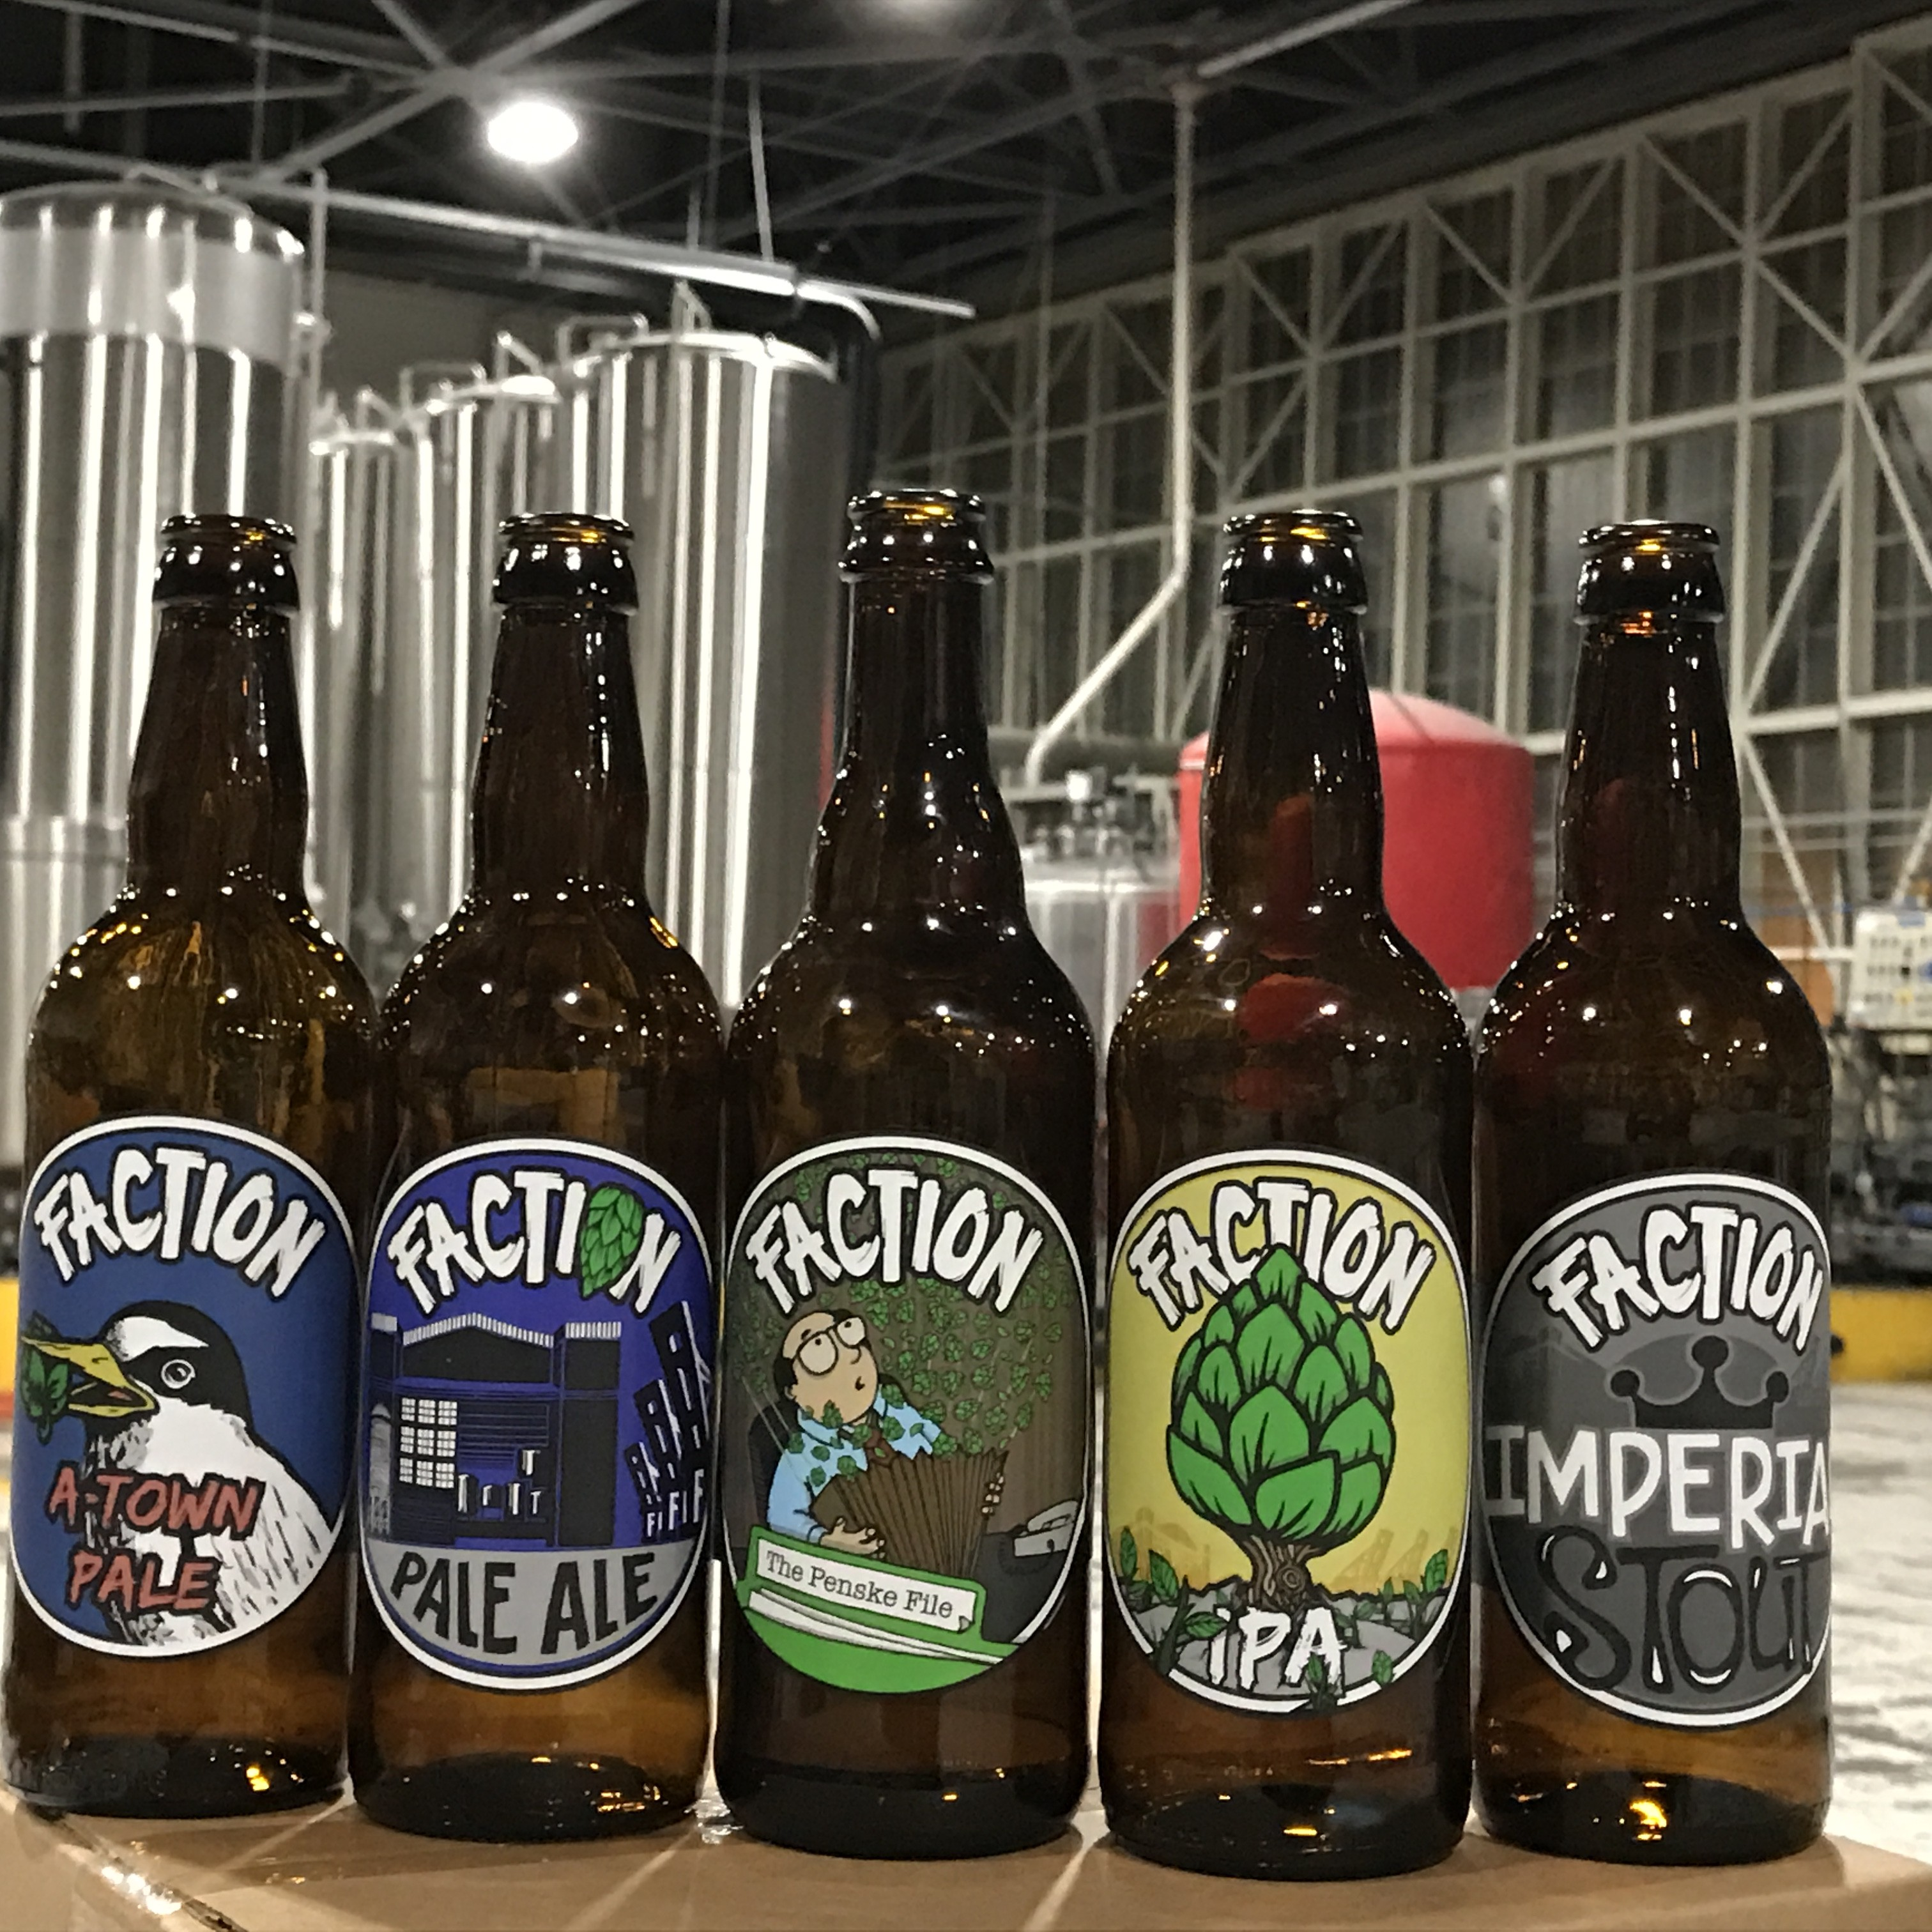 Faction Images new to-go bottles at faction brewing in alameda mercifully buck the